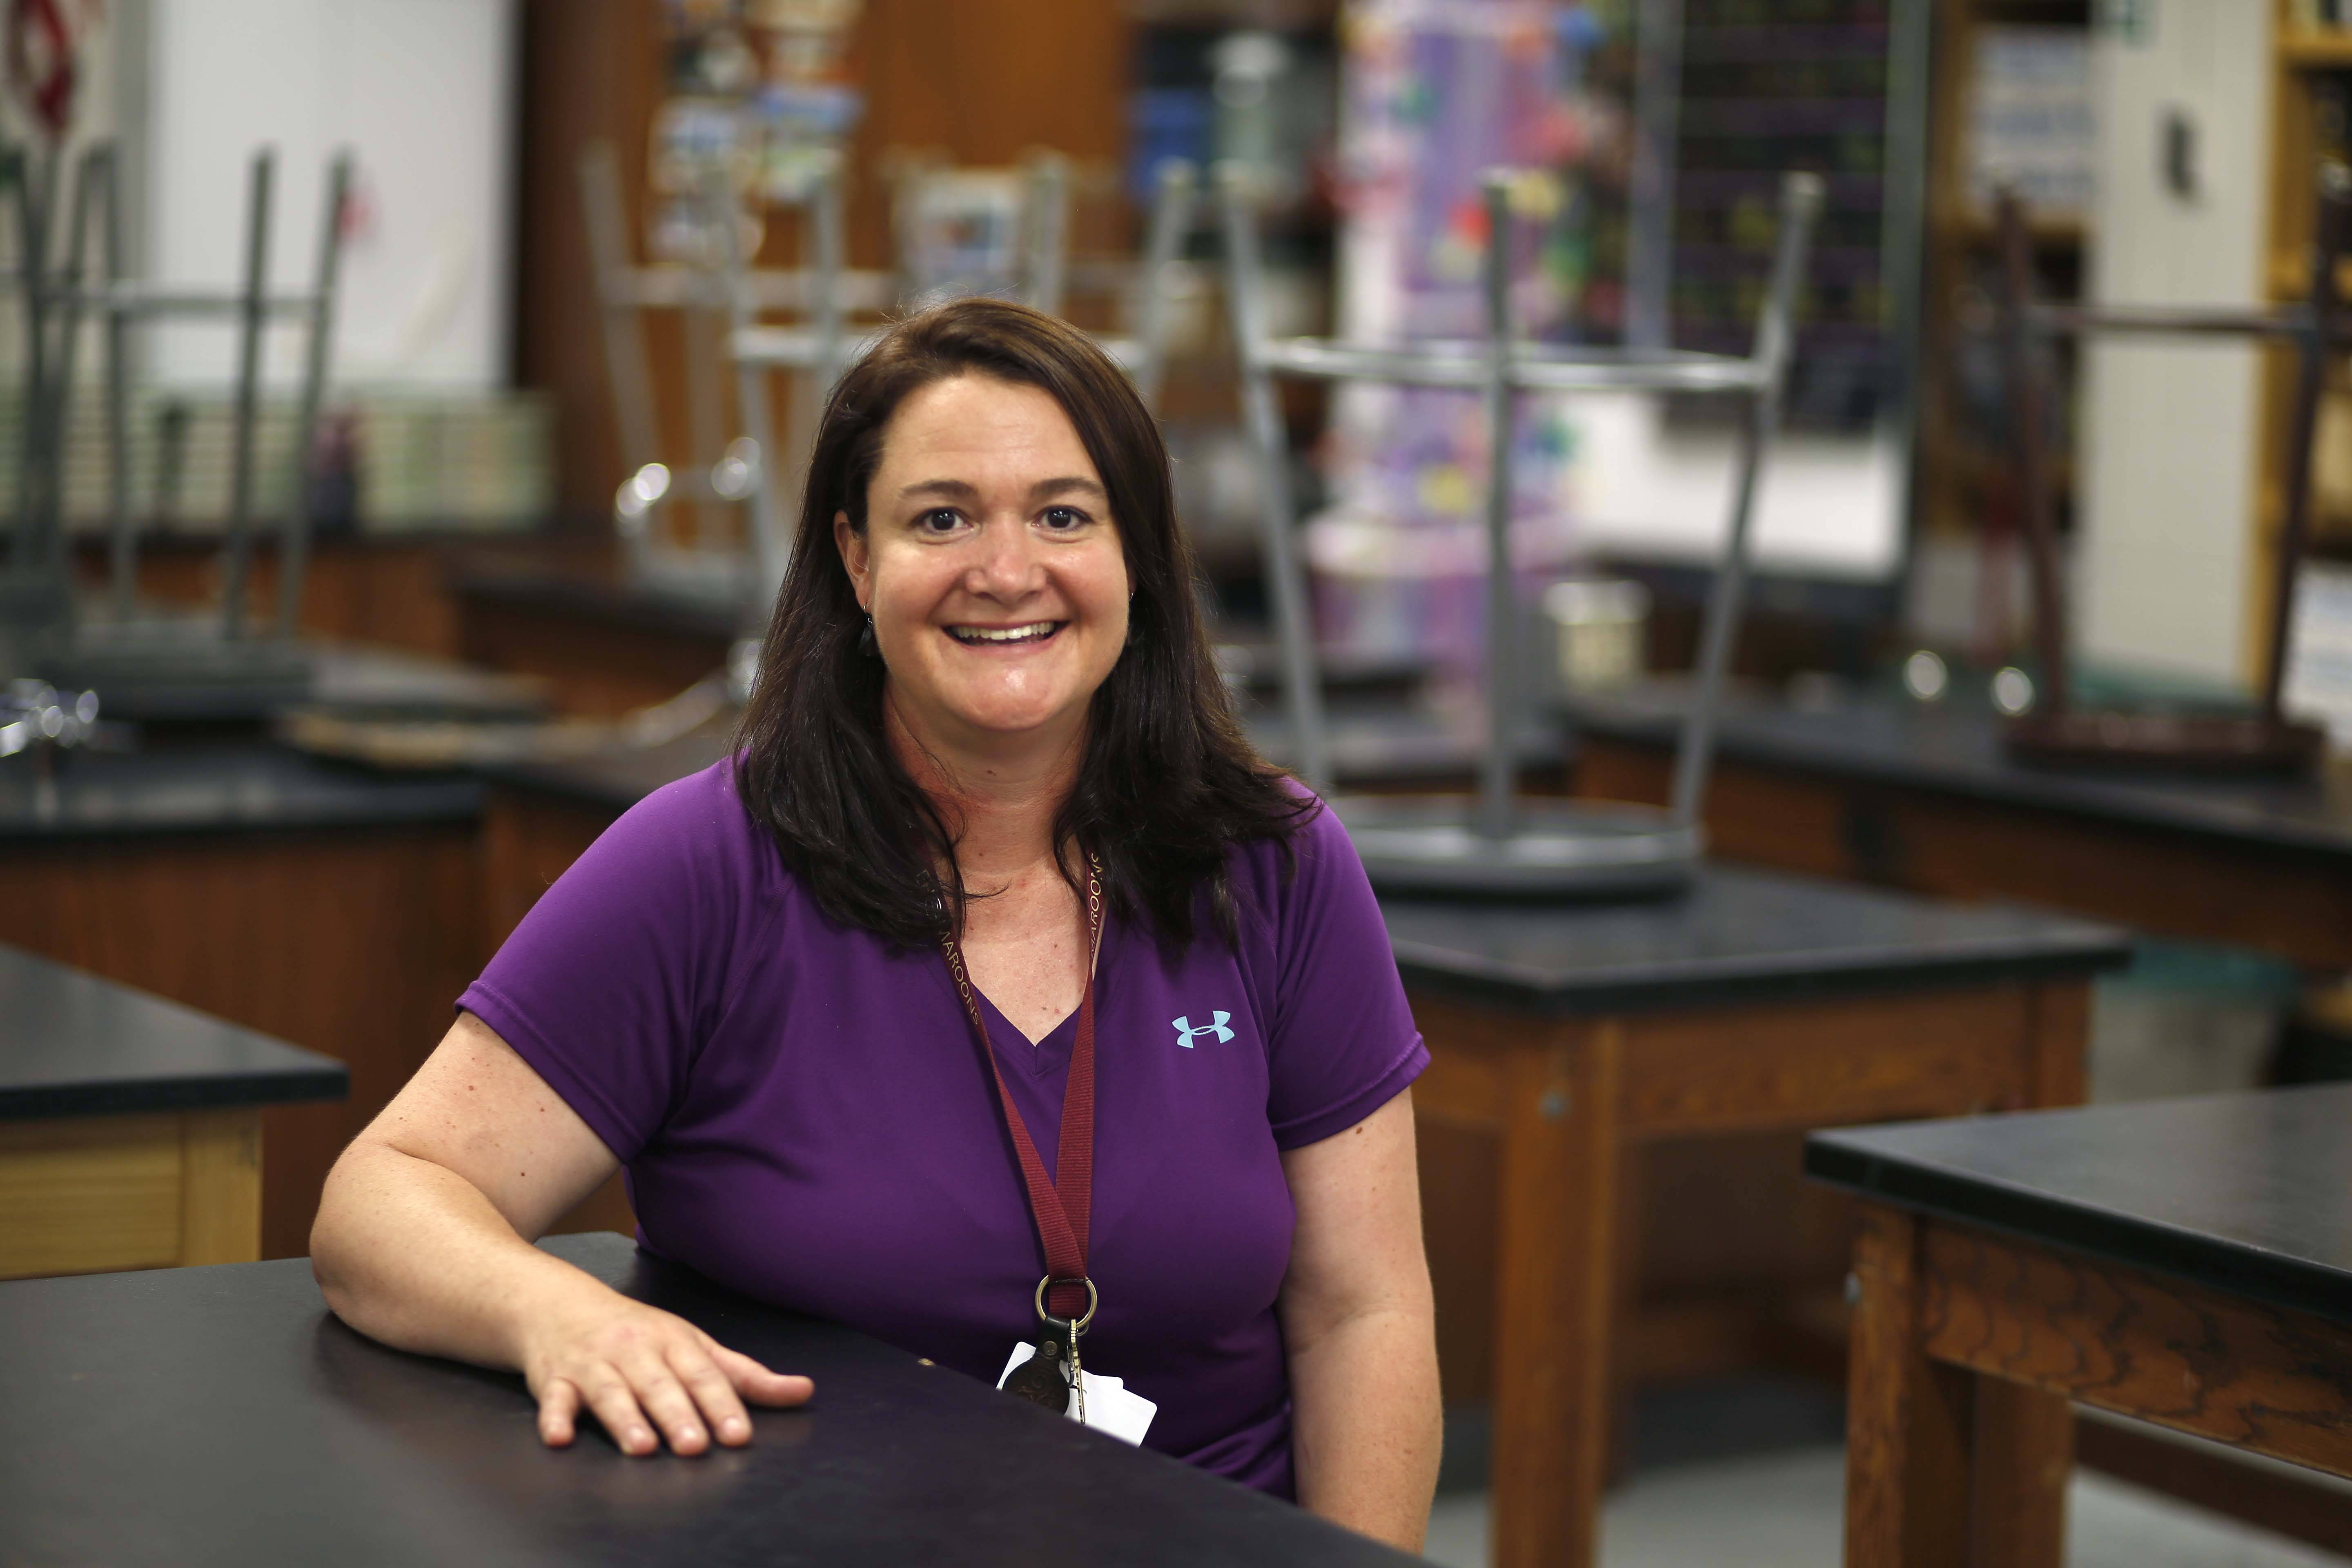 Elgin science teacher uses nature to engage students